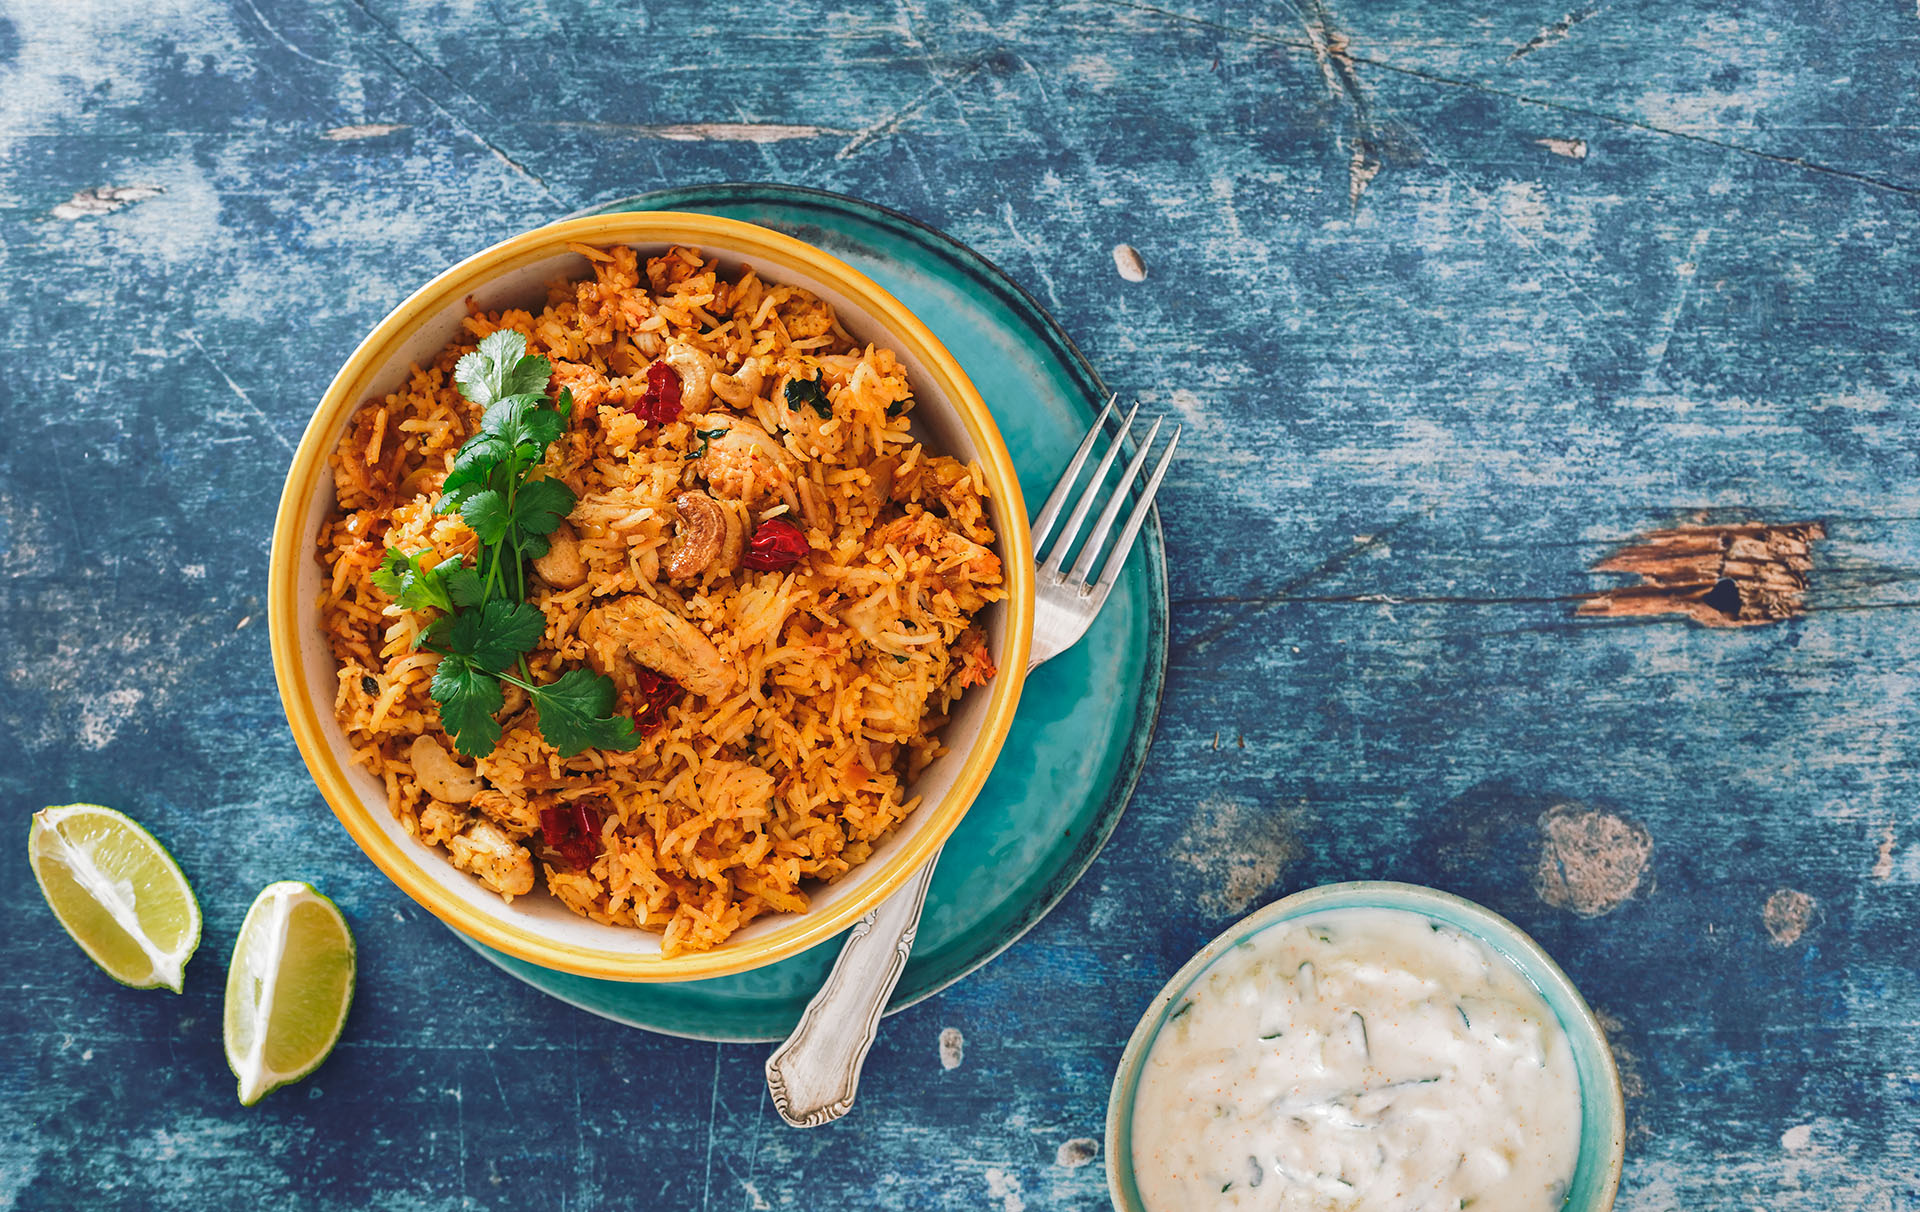 Aldi Launches Slimming World Style Ready Meals That Will Save You Money